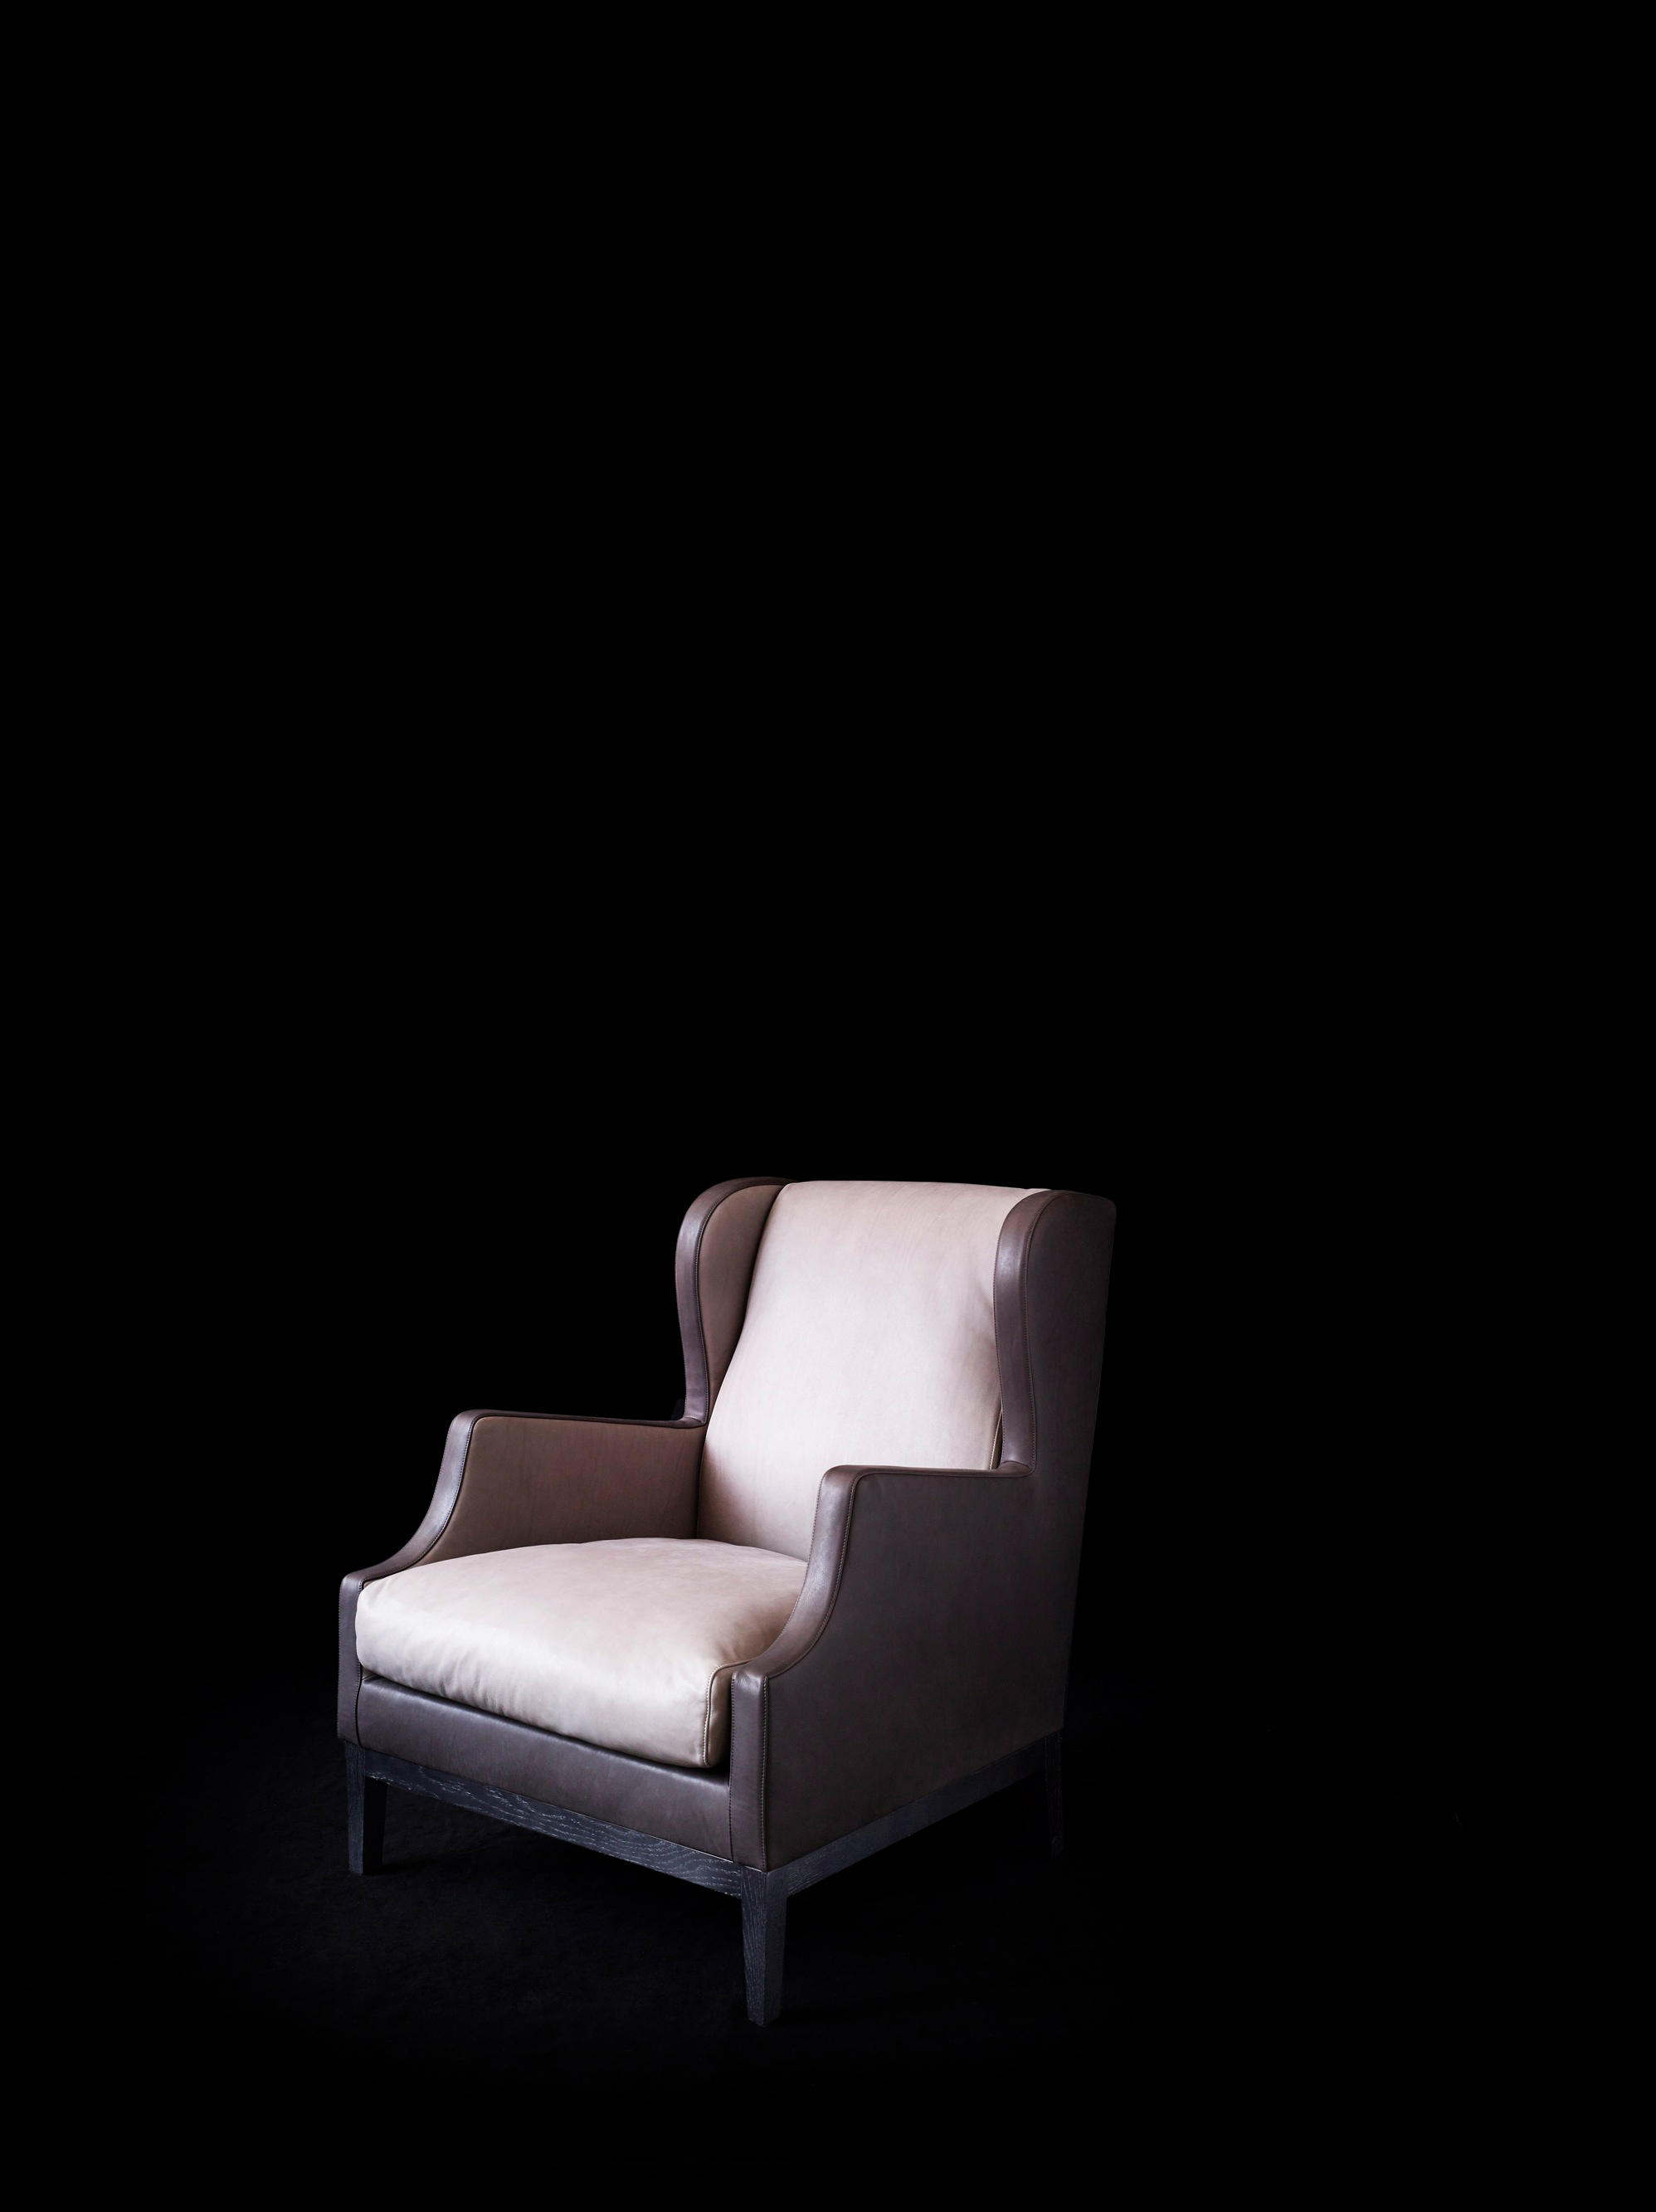 Chauffeuse Armchairs From Living Divani Architonic